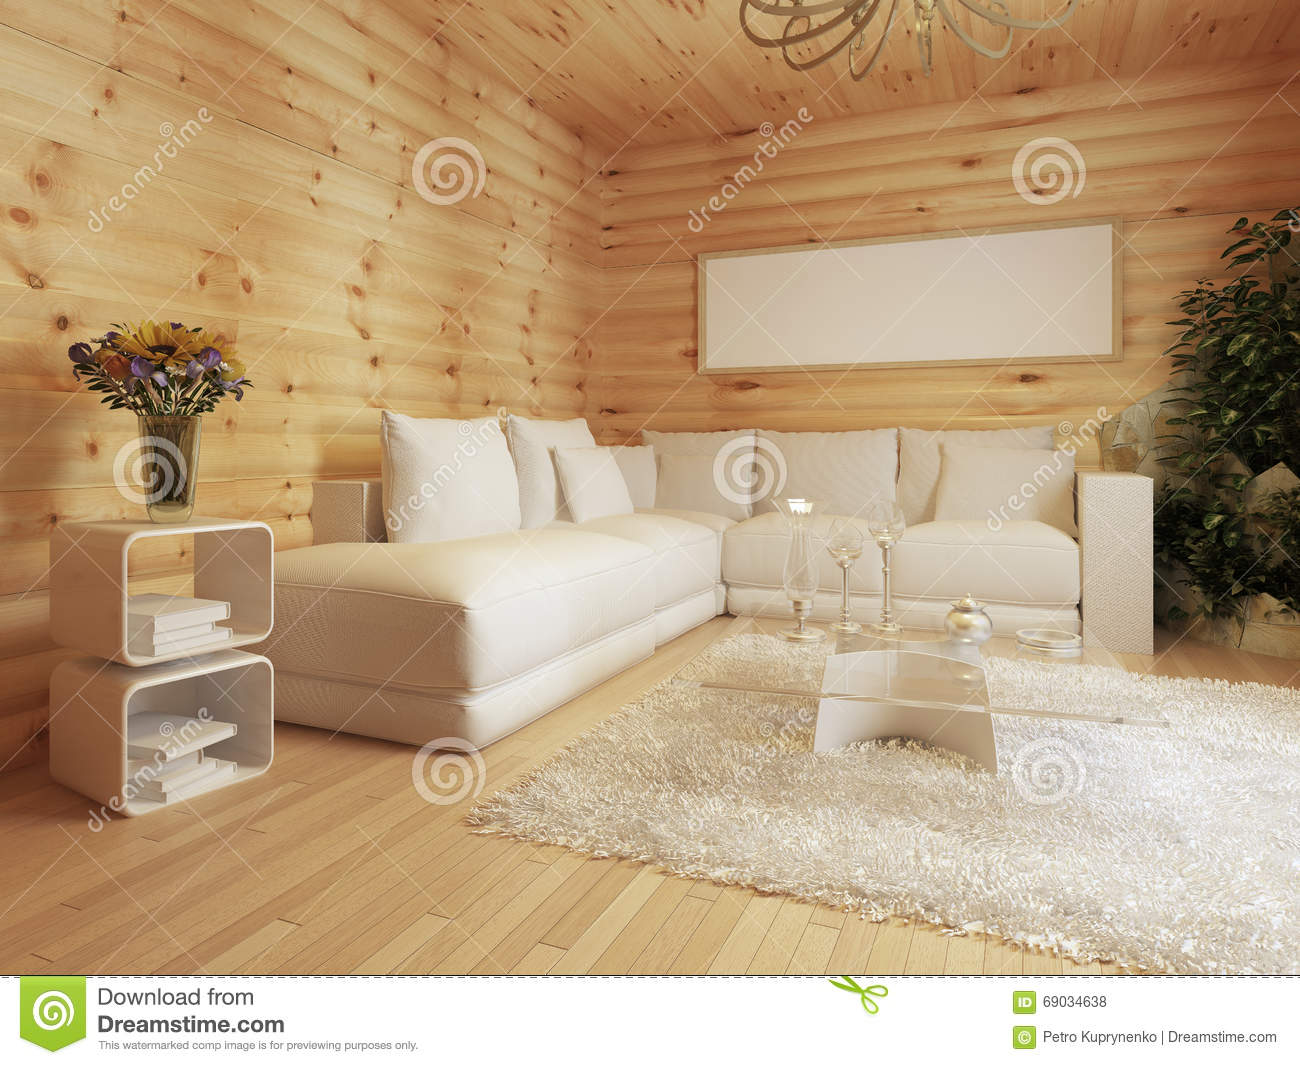 Living room interior in a log house